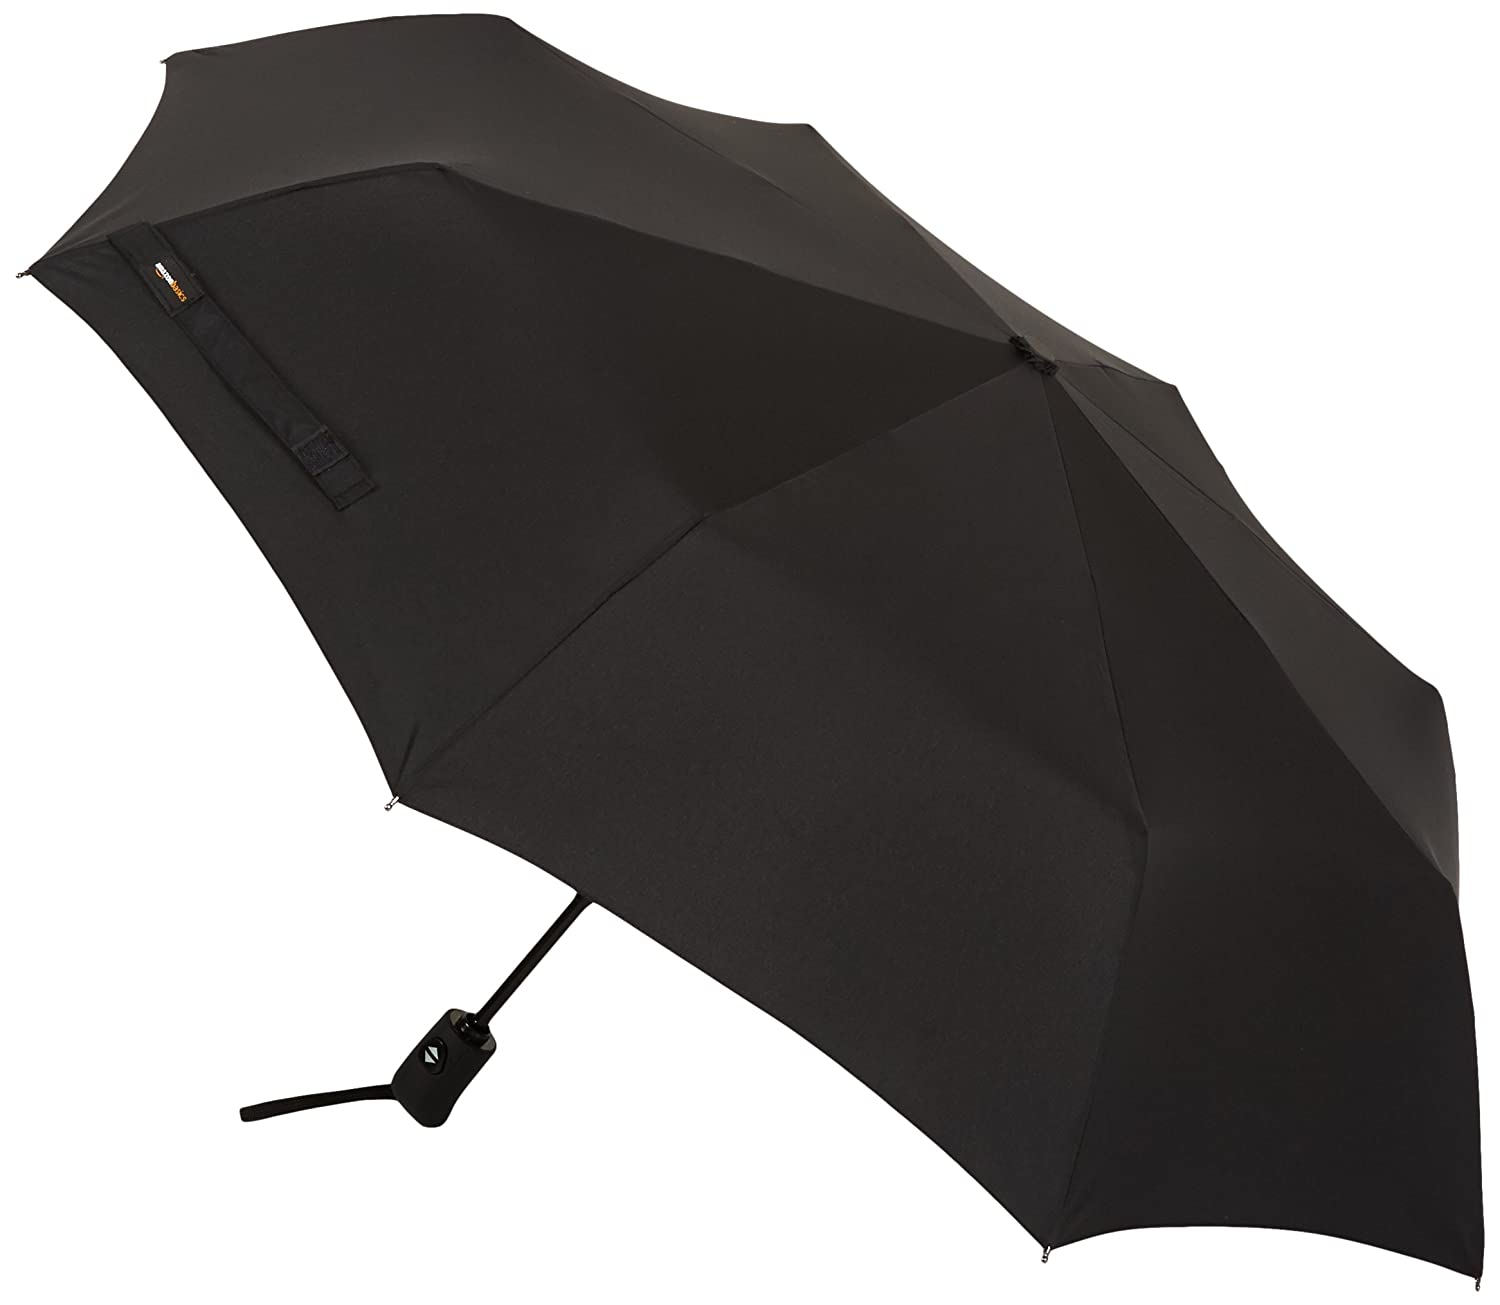 AmazonBasics Automatic Travel Umbrella, Black WXD0319WD